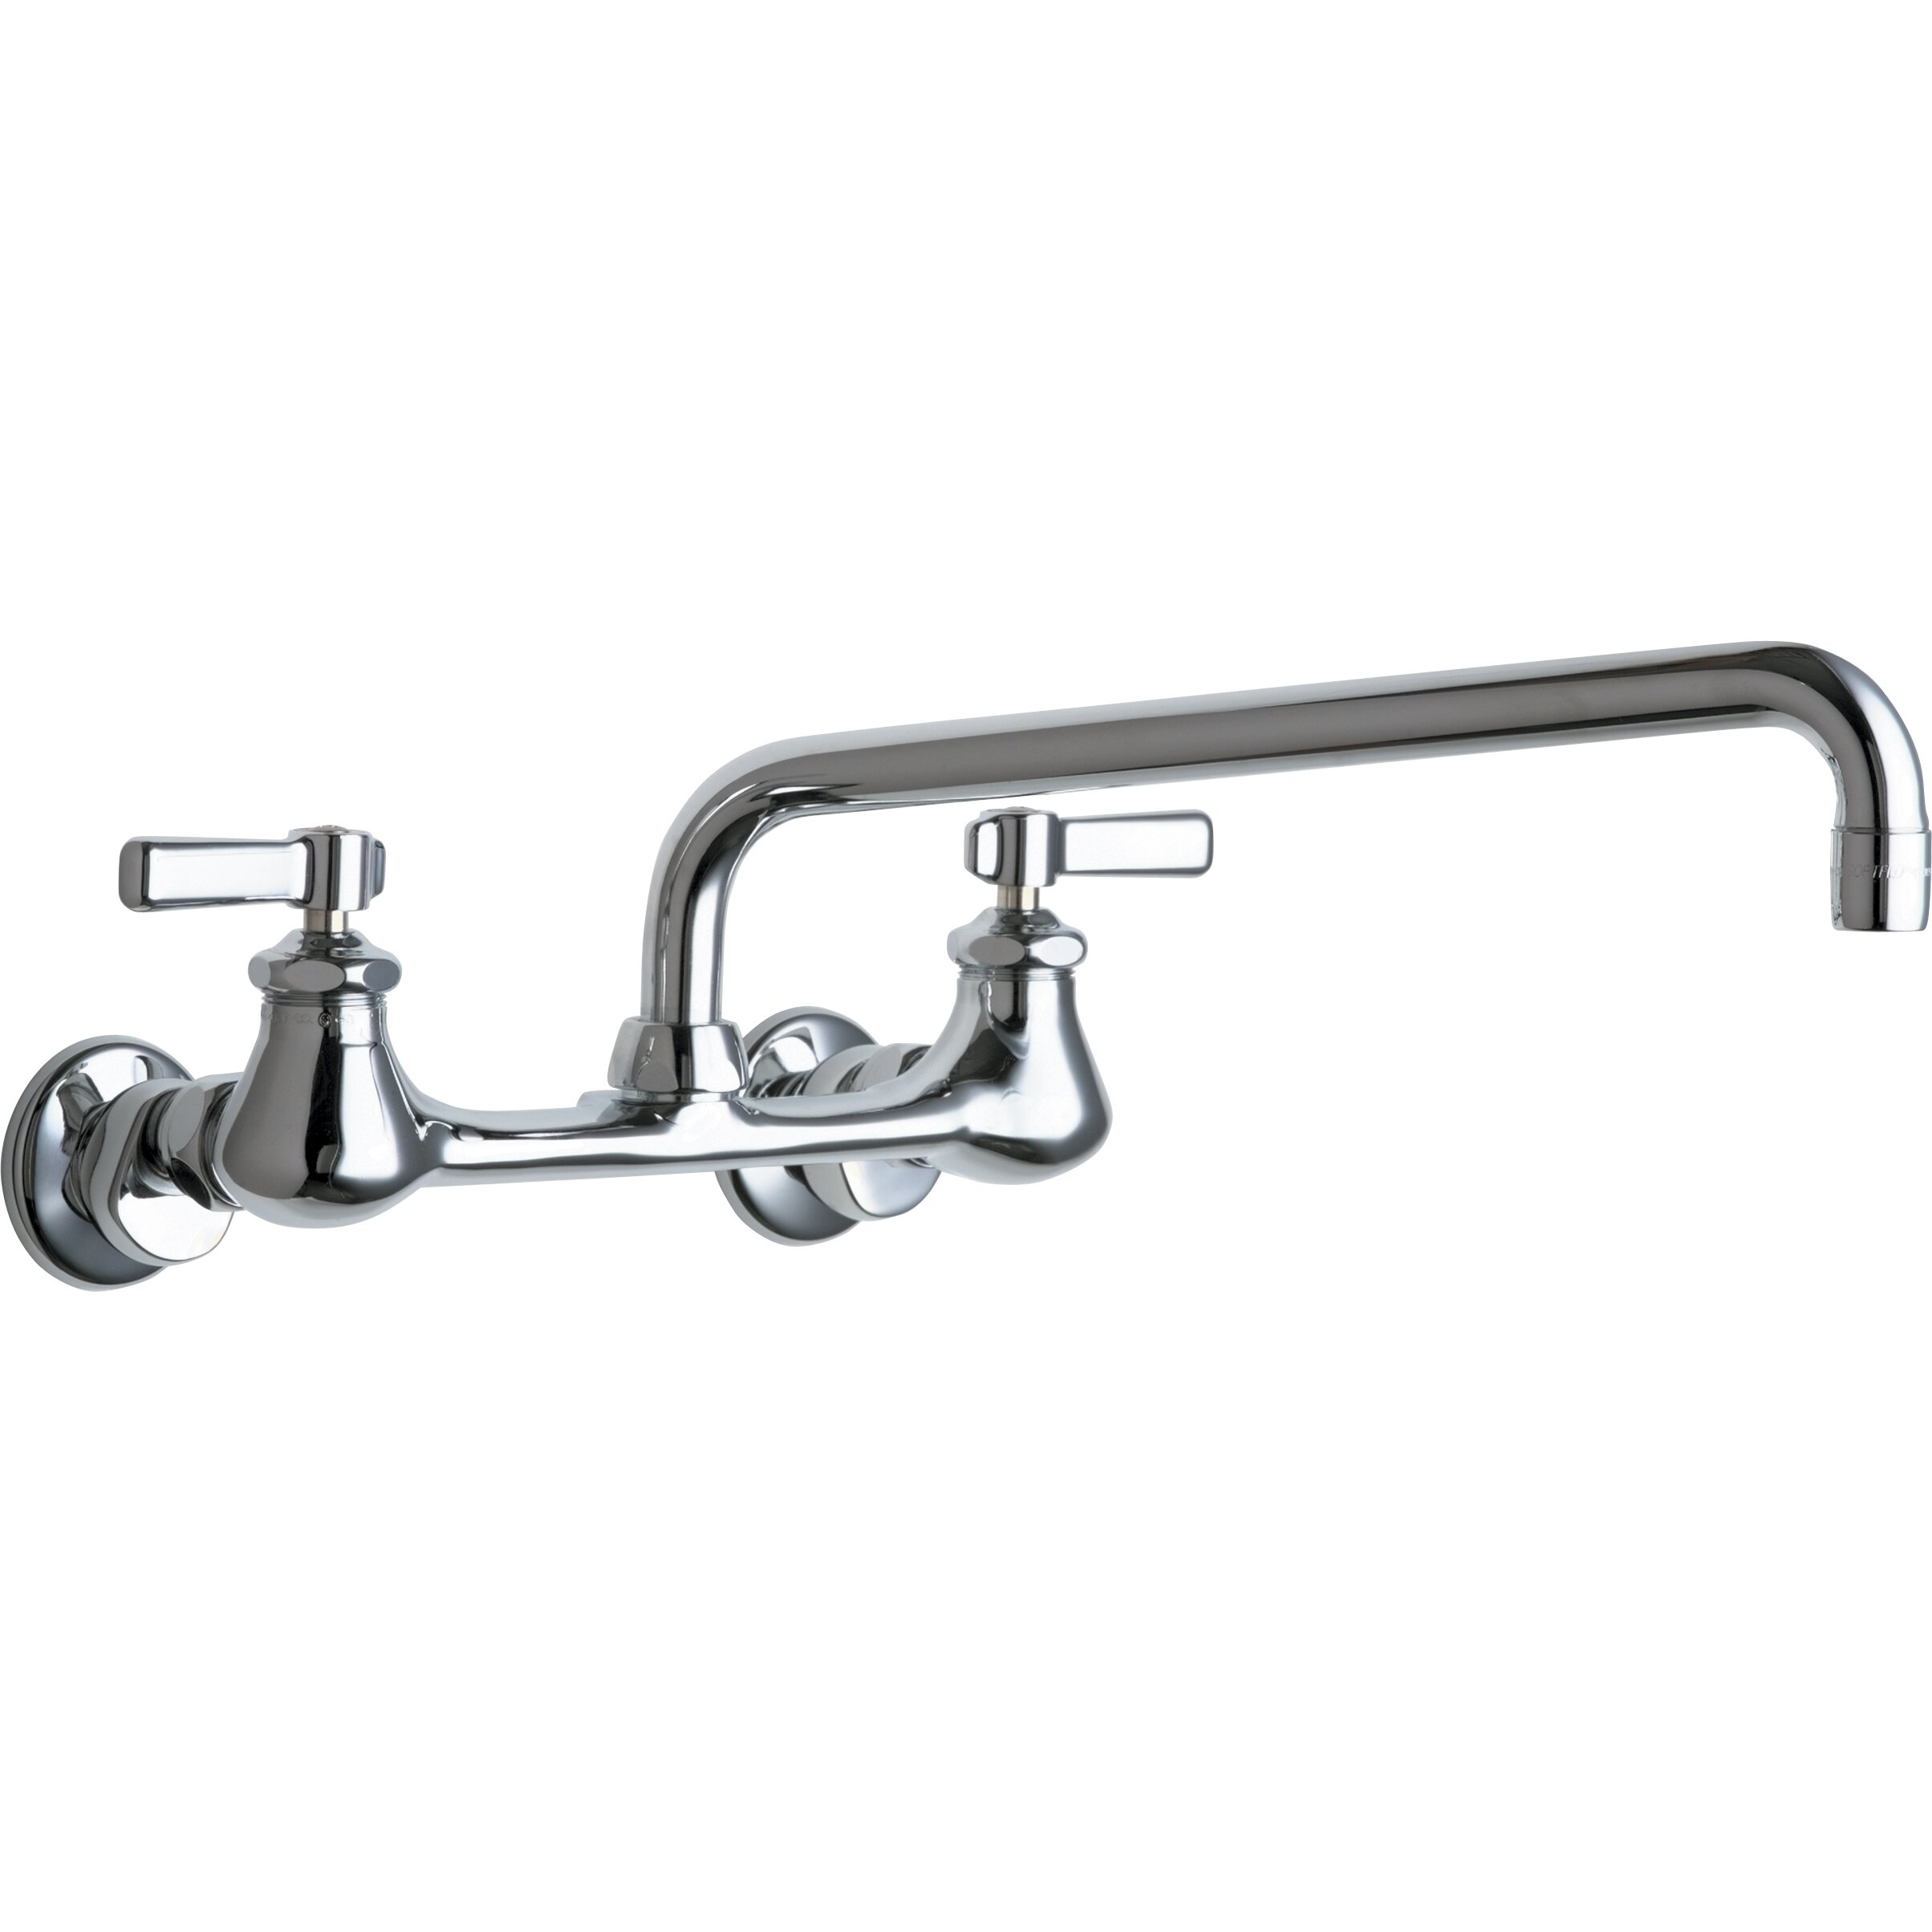 Chicago Faucets 540 Double Handle Wall Mount Bridge Kitchen Faucet ...